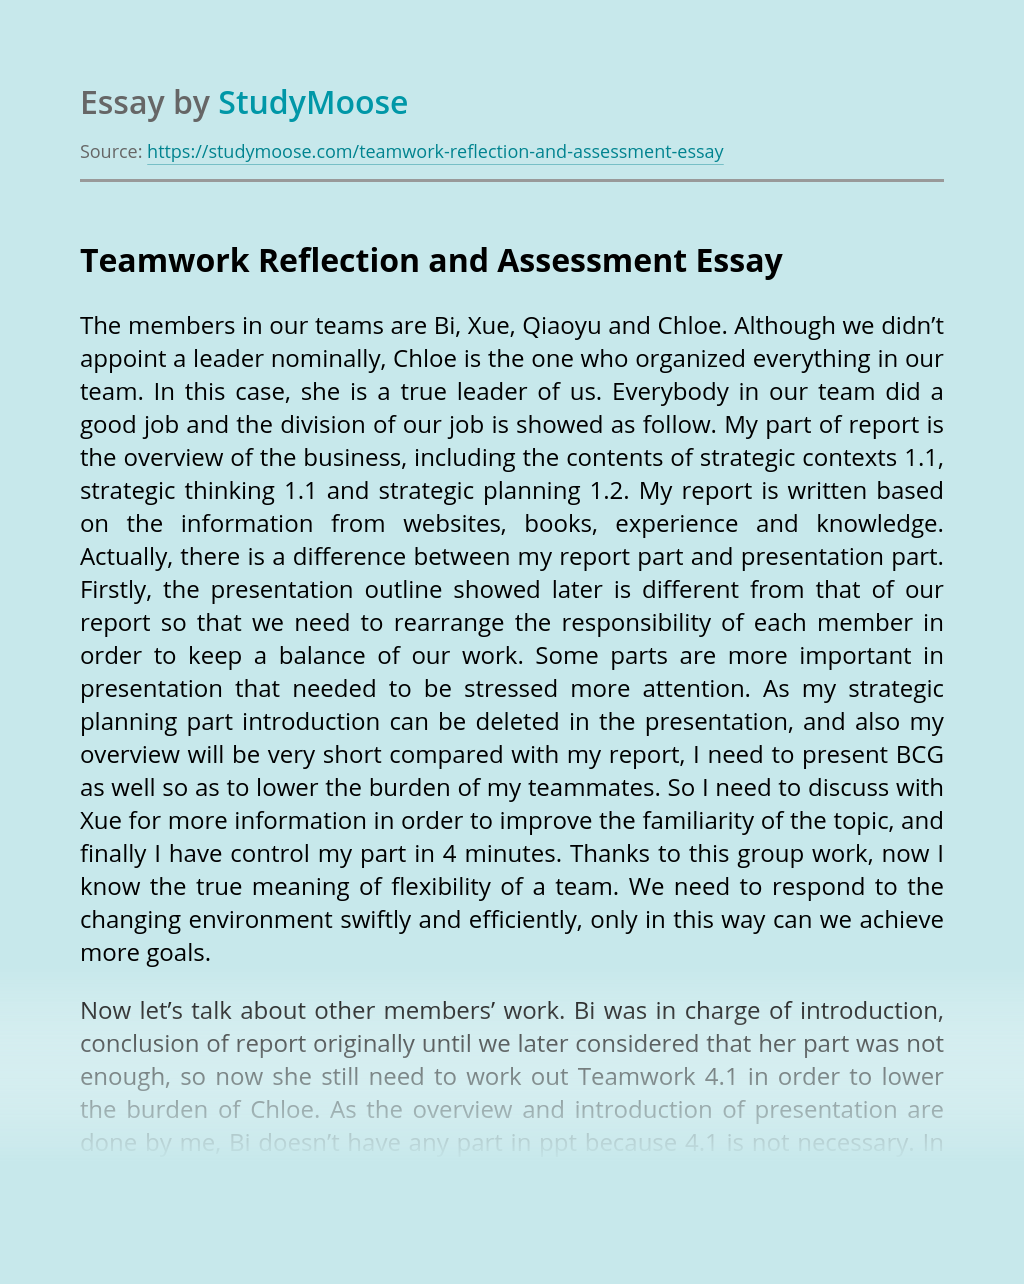 Teamwork Reflection and Assessment